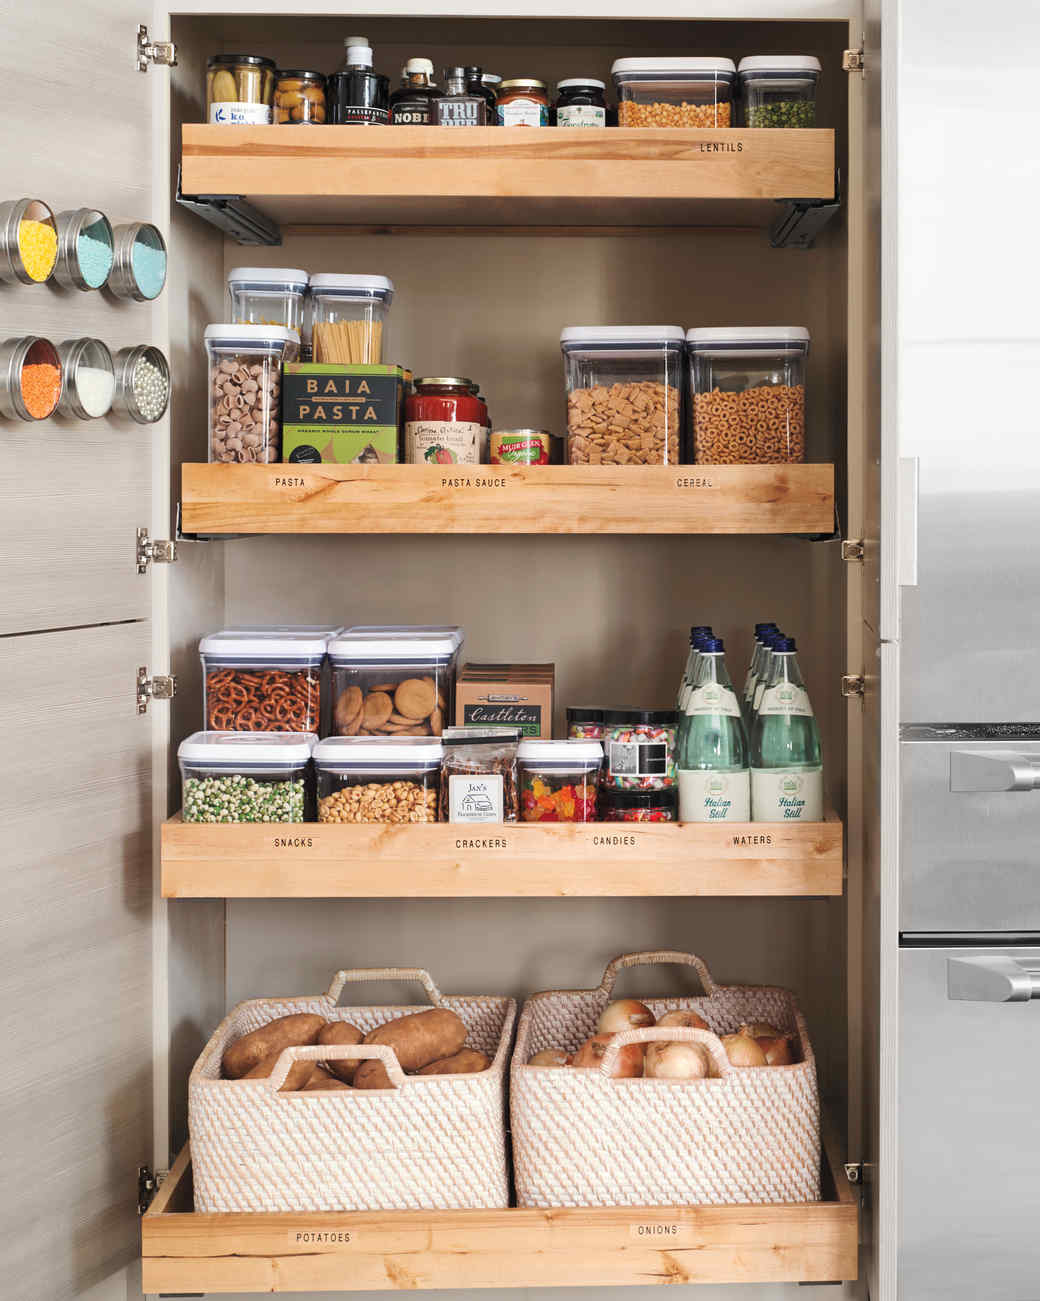 Best ideas about Kitchen Pantry Shelving . Save or Pin 10 Best Pantry Storage Ideas Now.